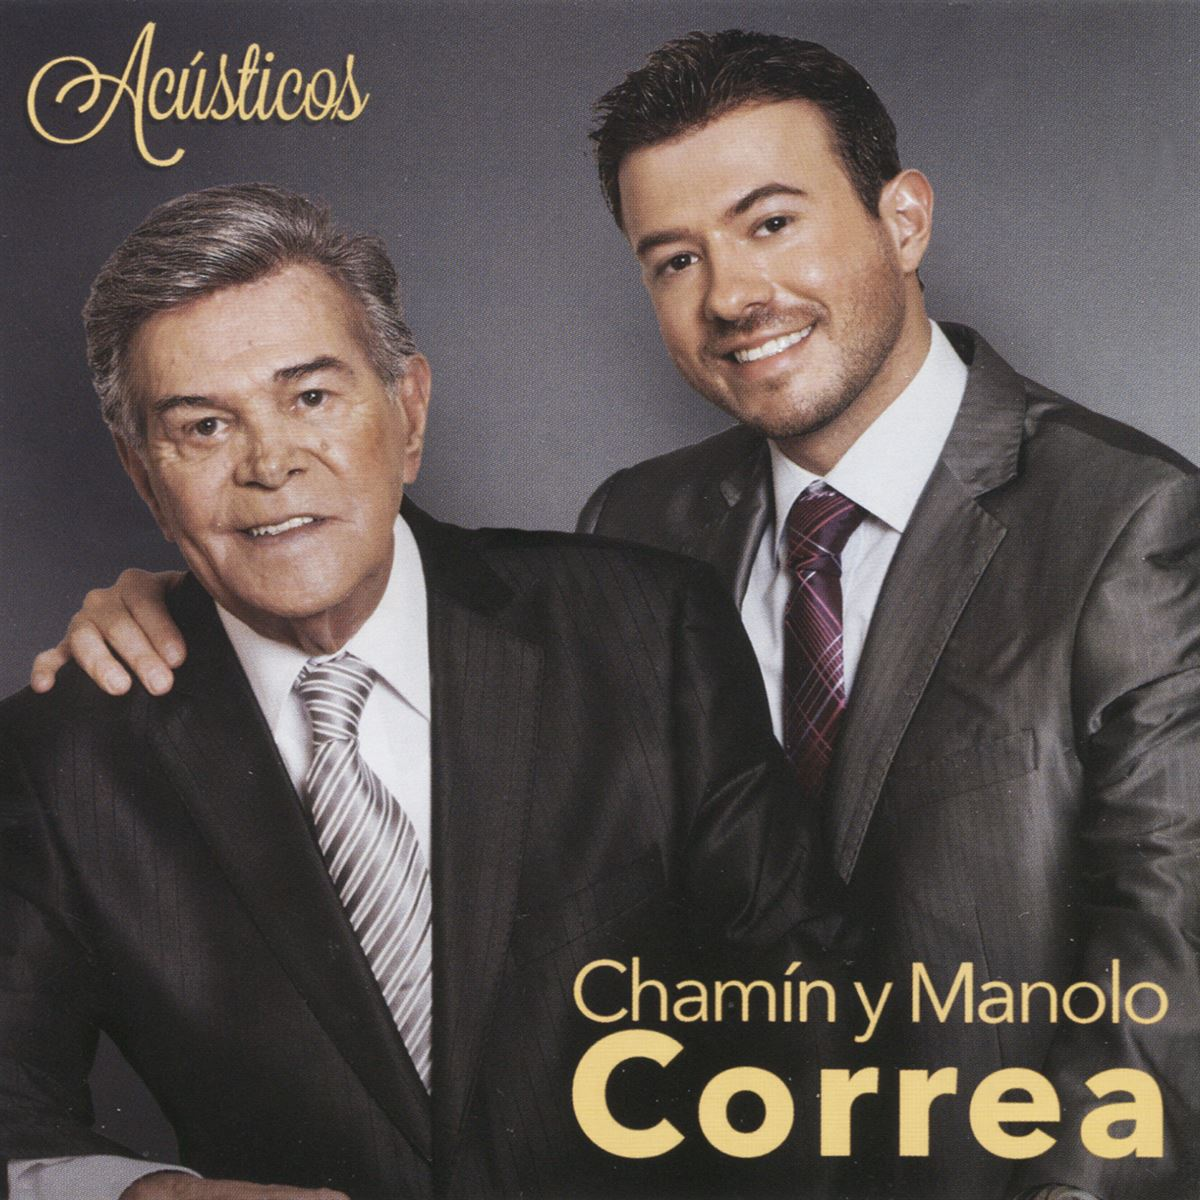 Cd chamín y manolo correa-acústicos  - Sanborns